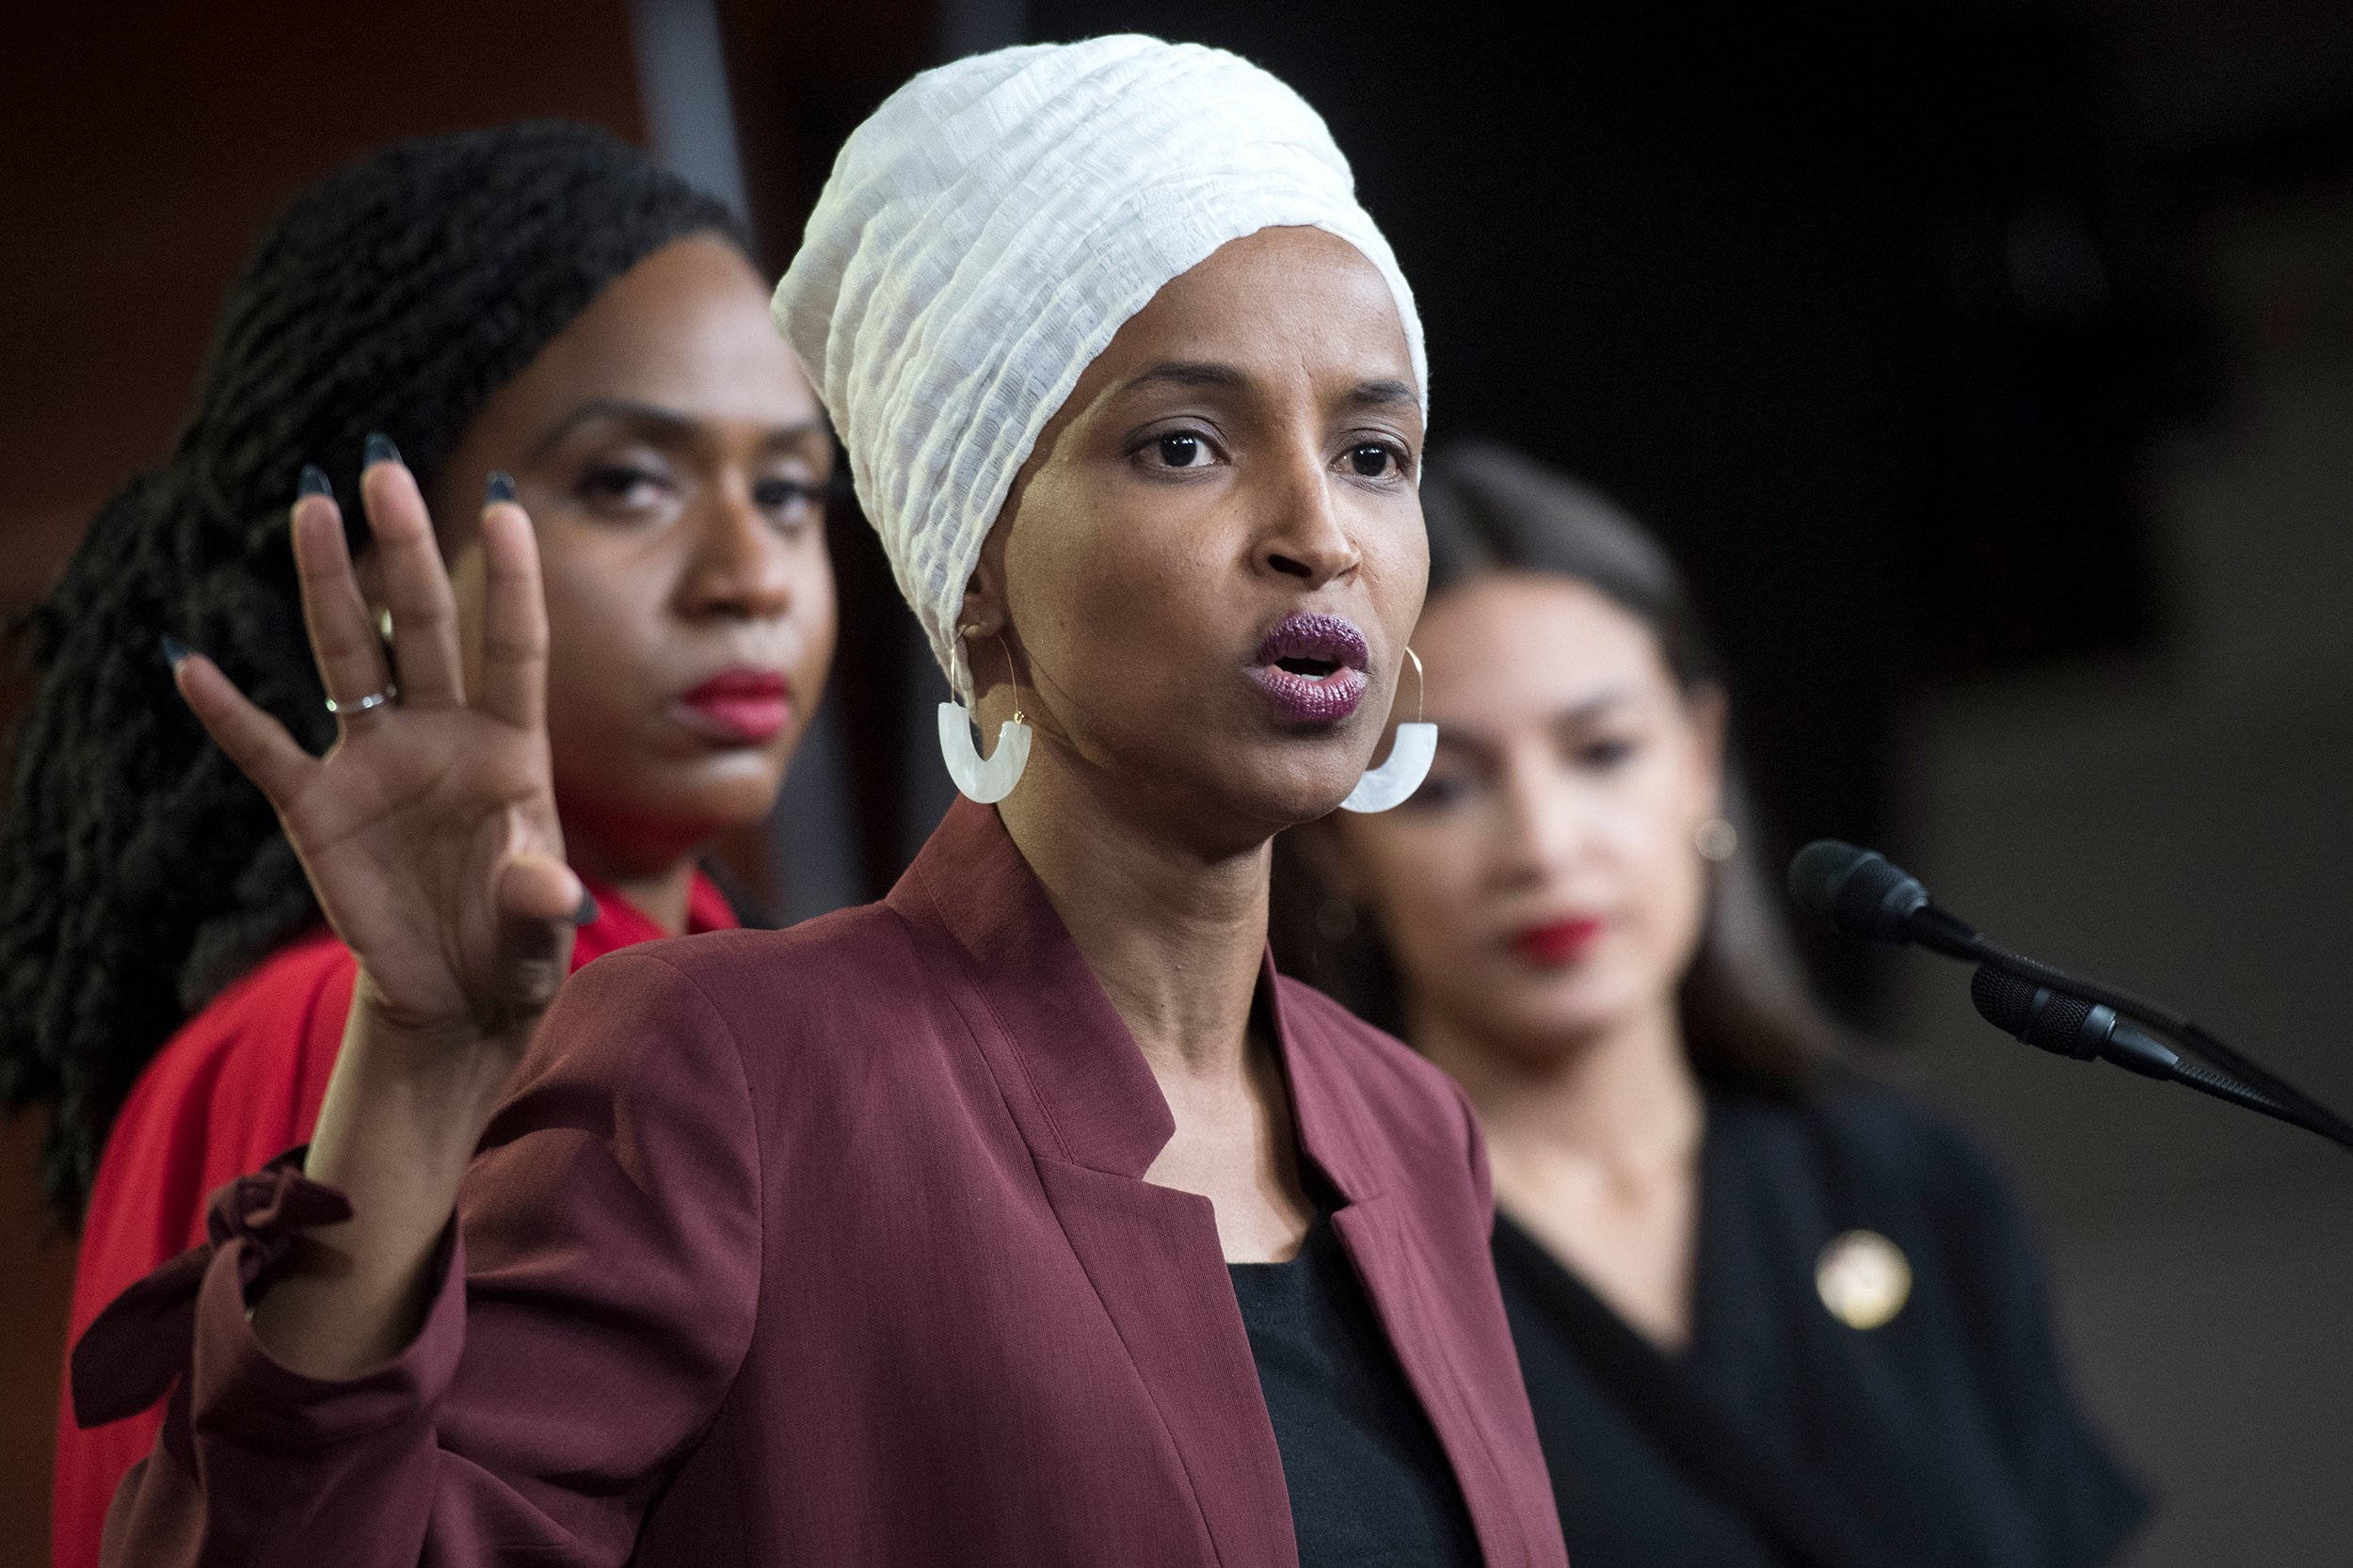 Here are the 4 congresswomen known as 'The Squad' targeted by Trump's racist tweets